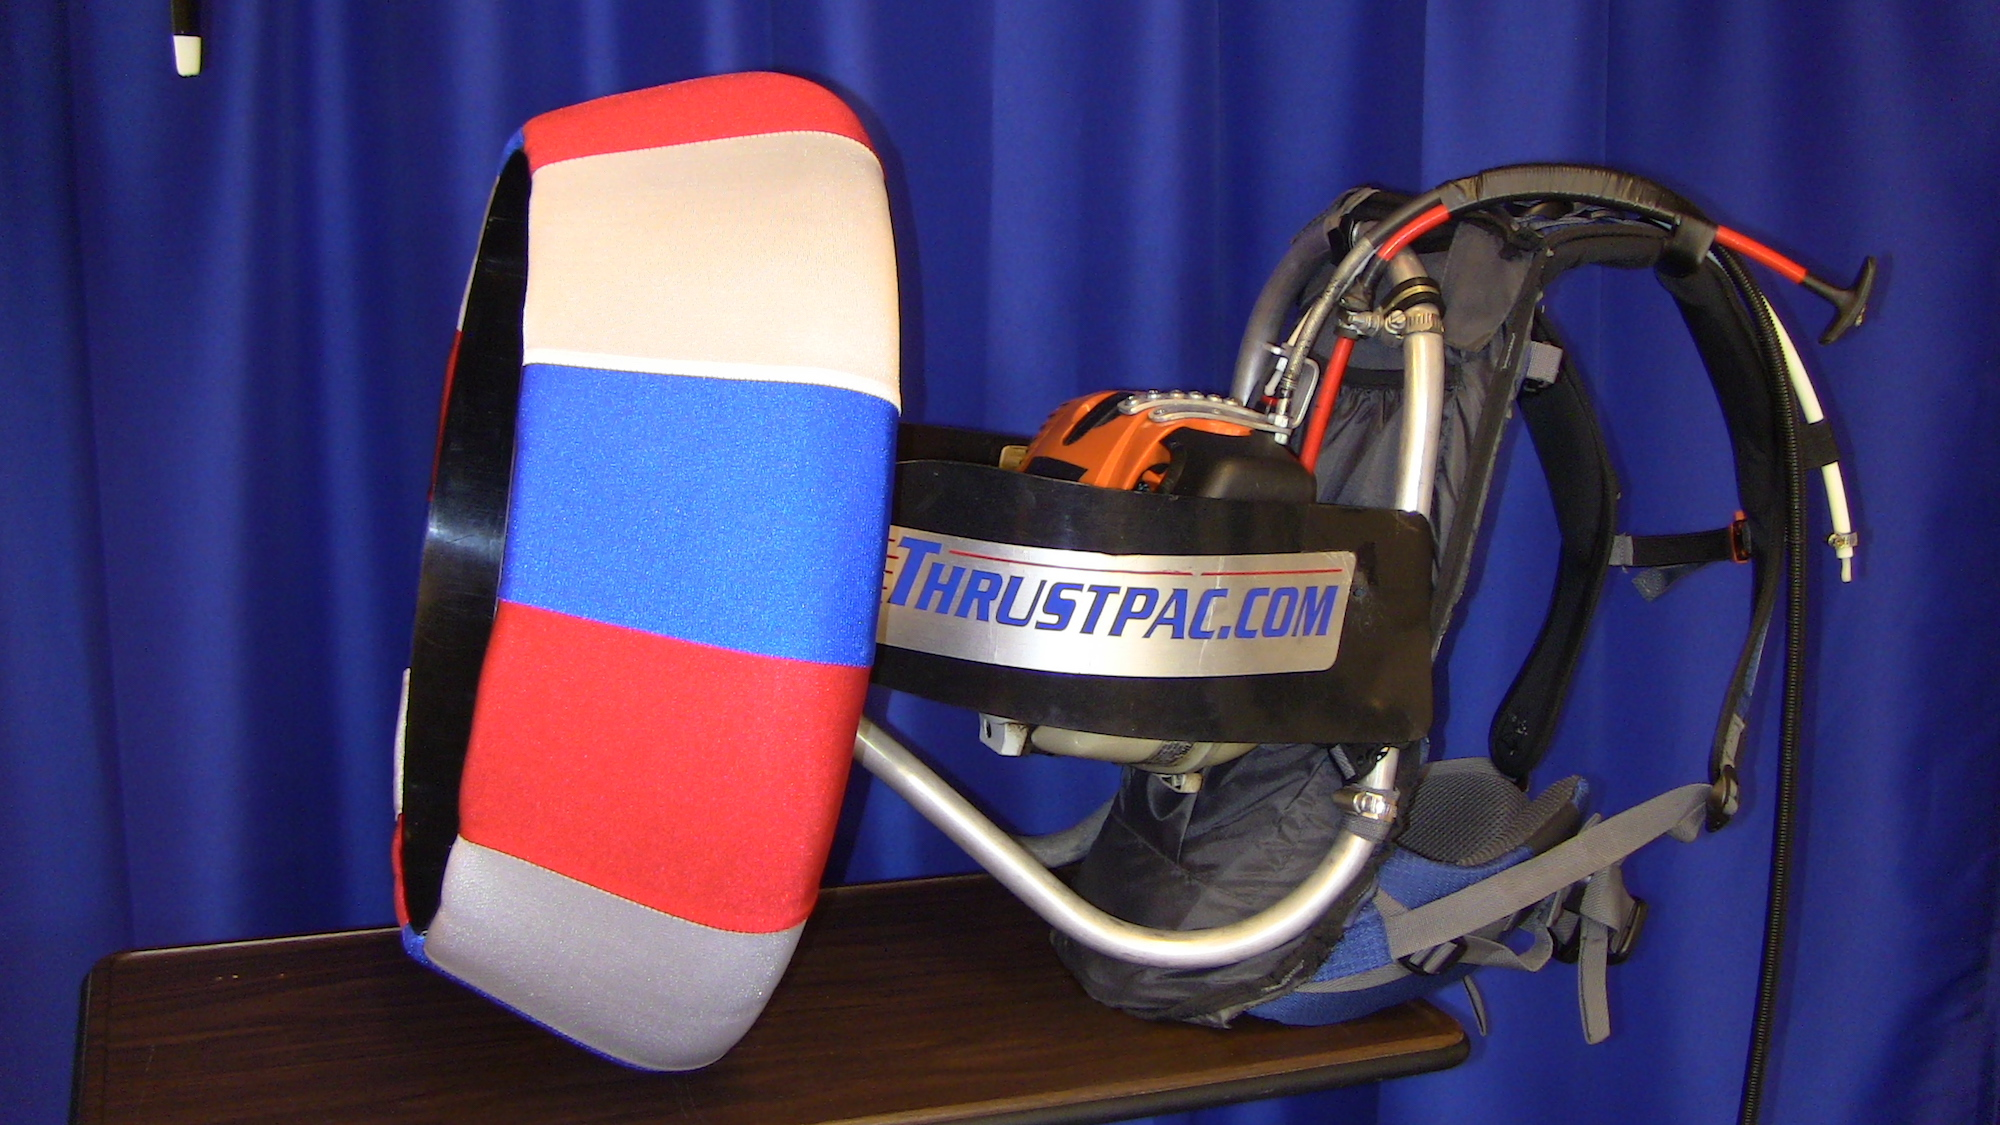 A red white & blue ThrustPac